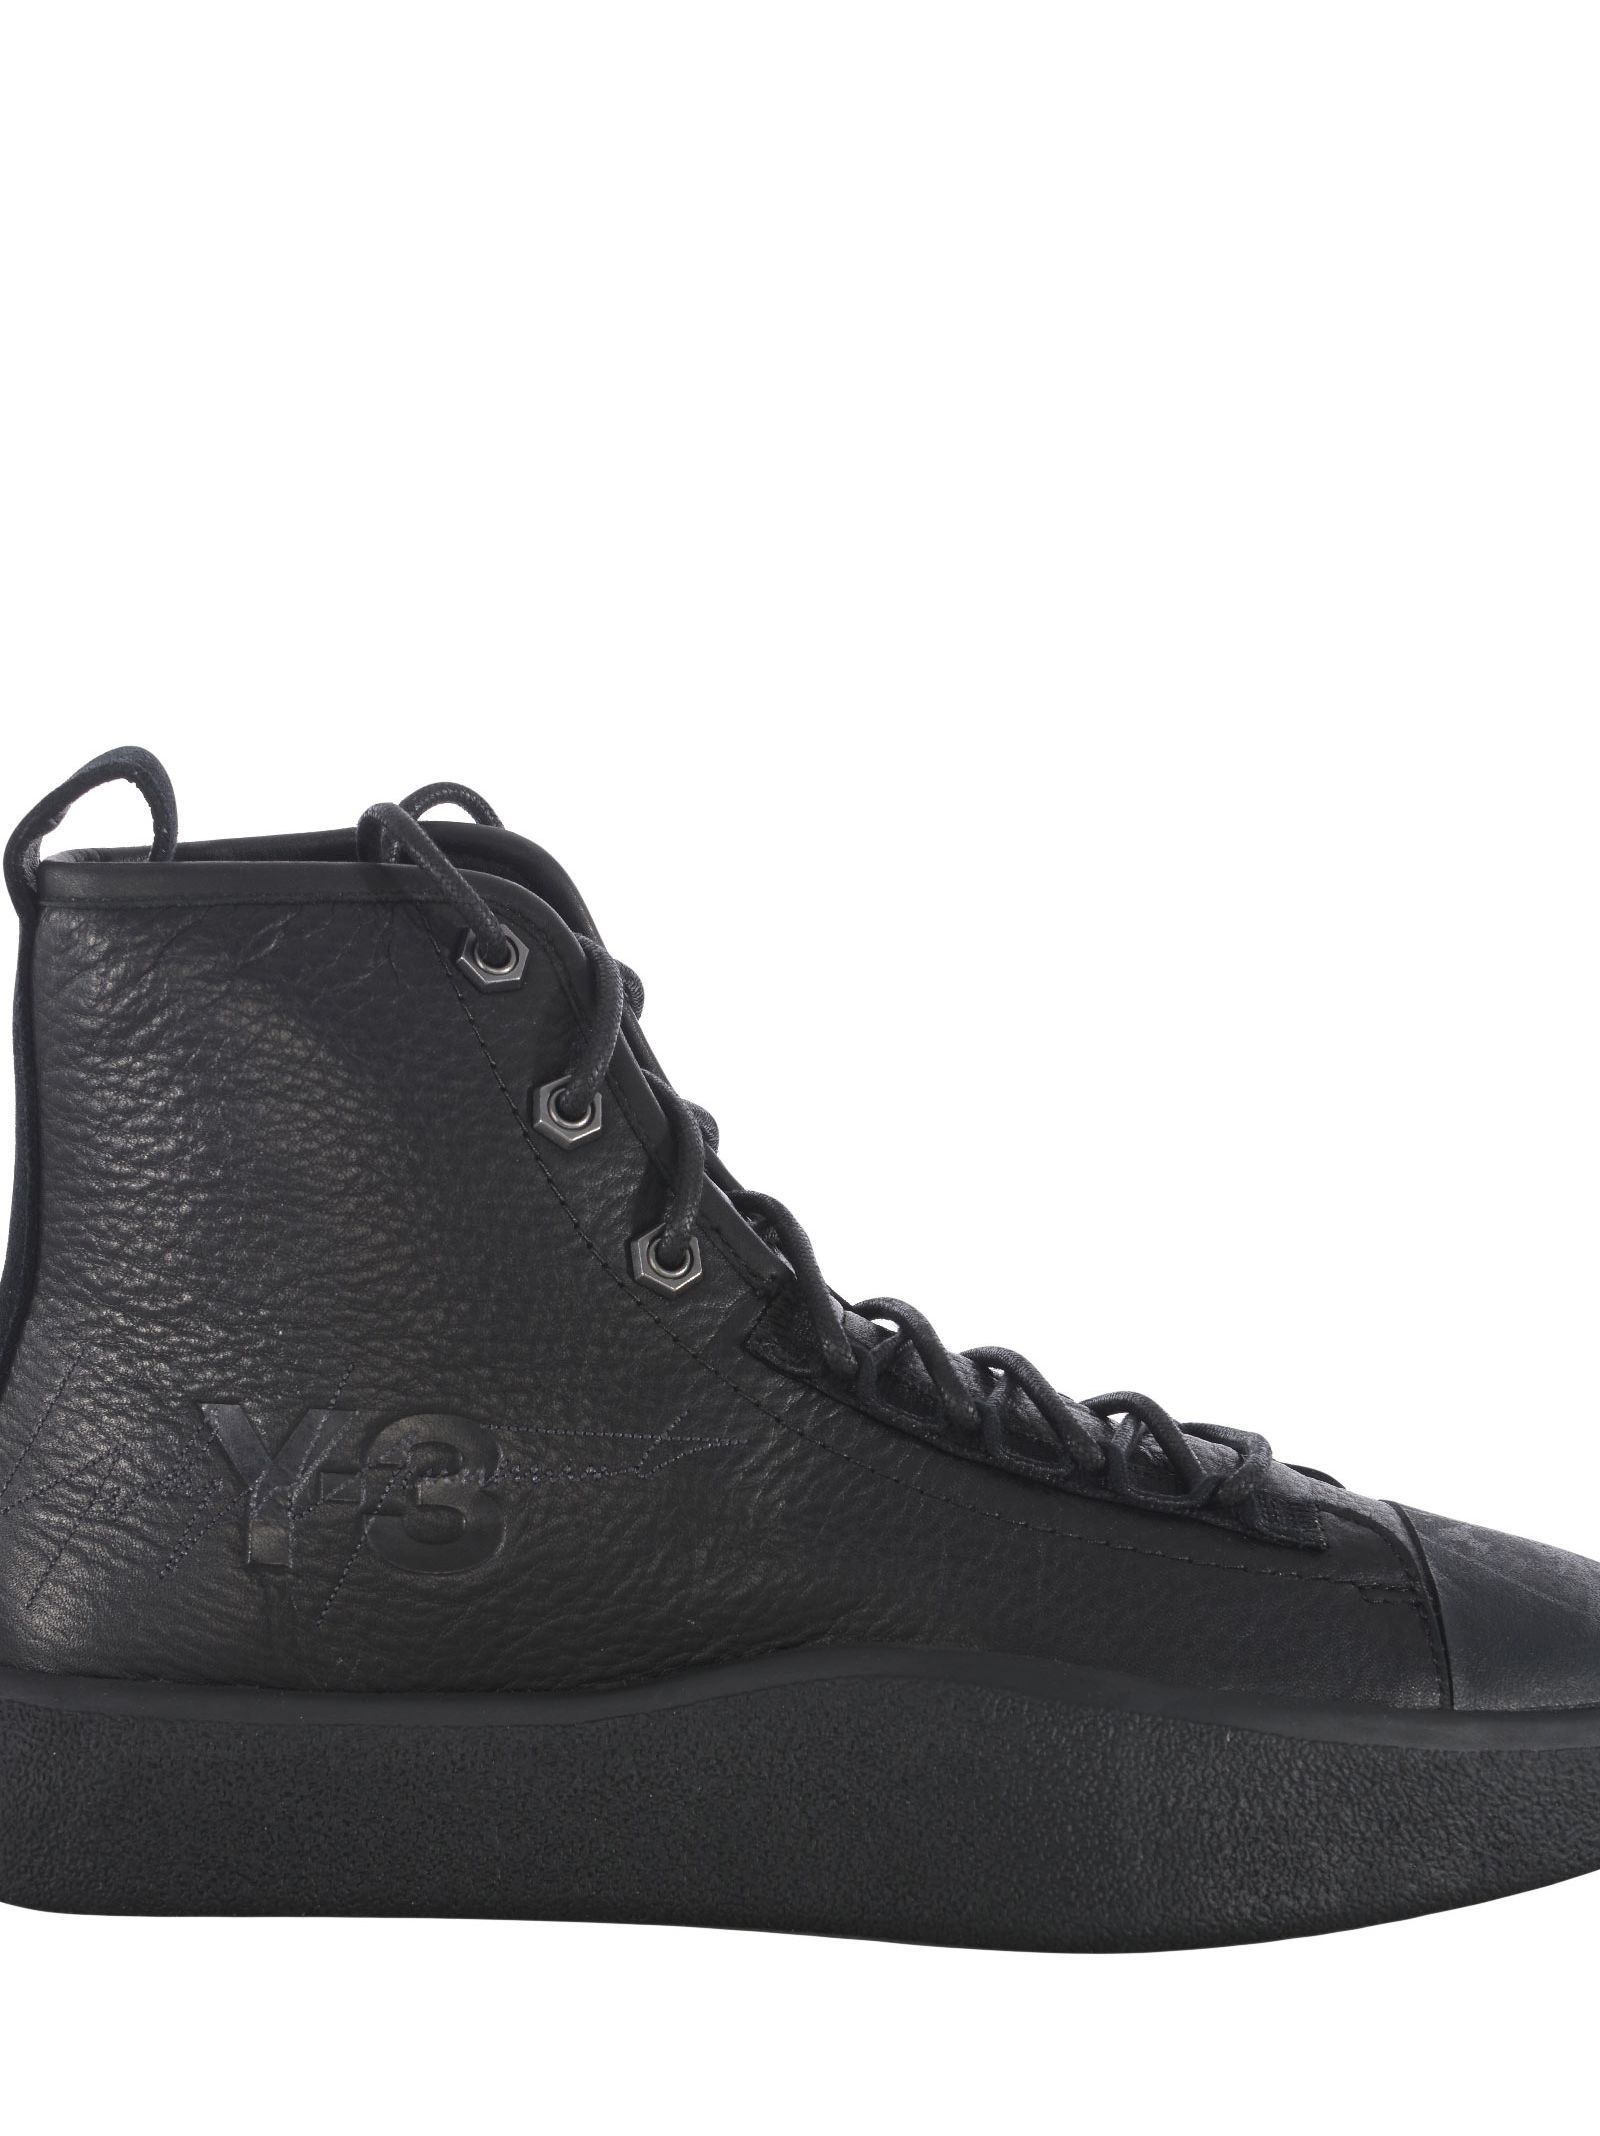 7c4310fbe Y-3 BASHYO II SNEAKERS.  y-3  shoes Leather High Tops